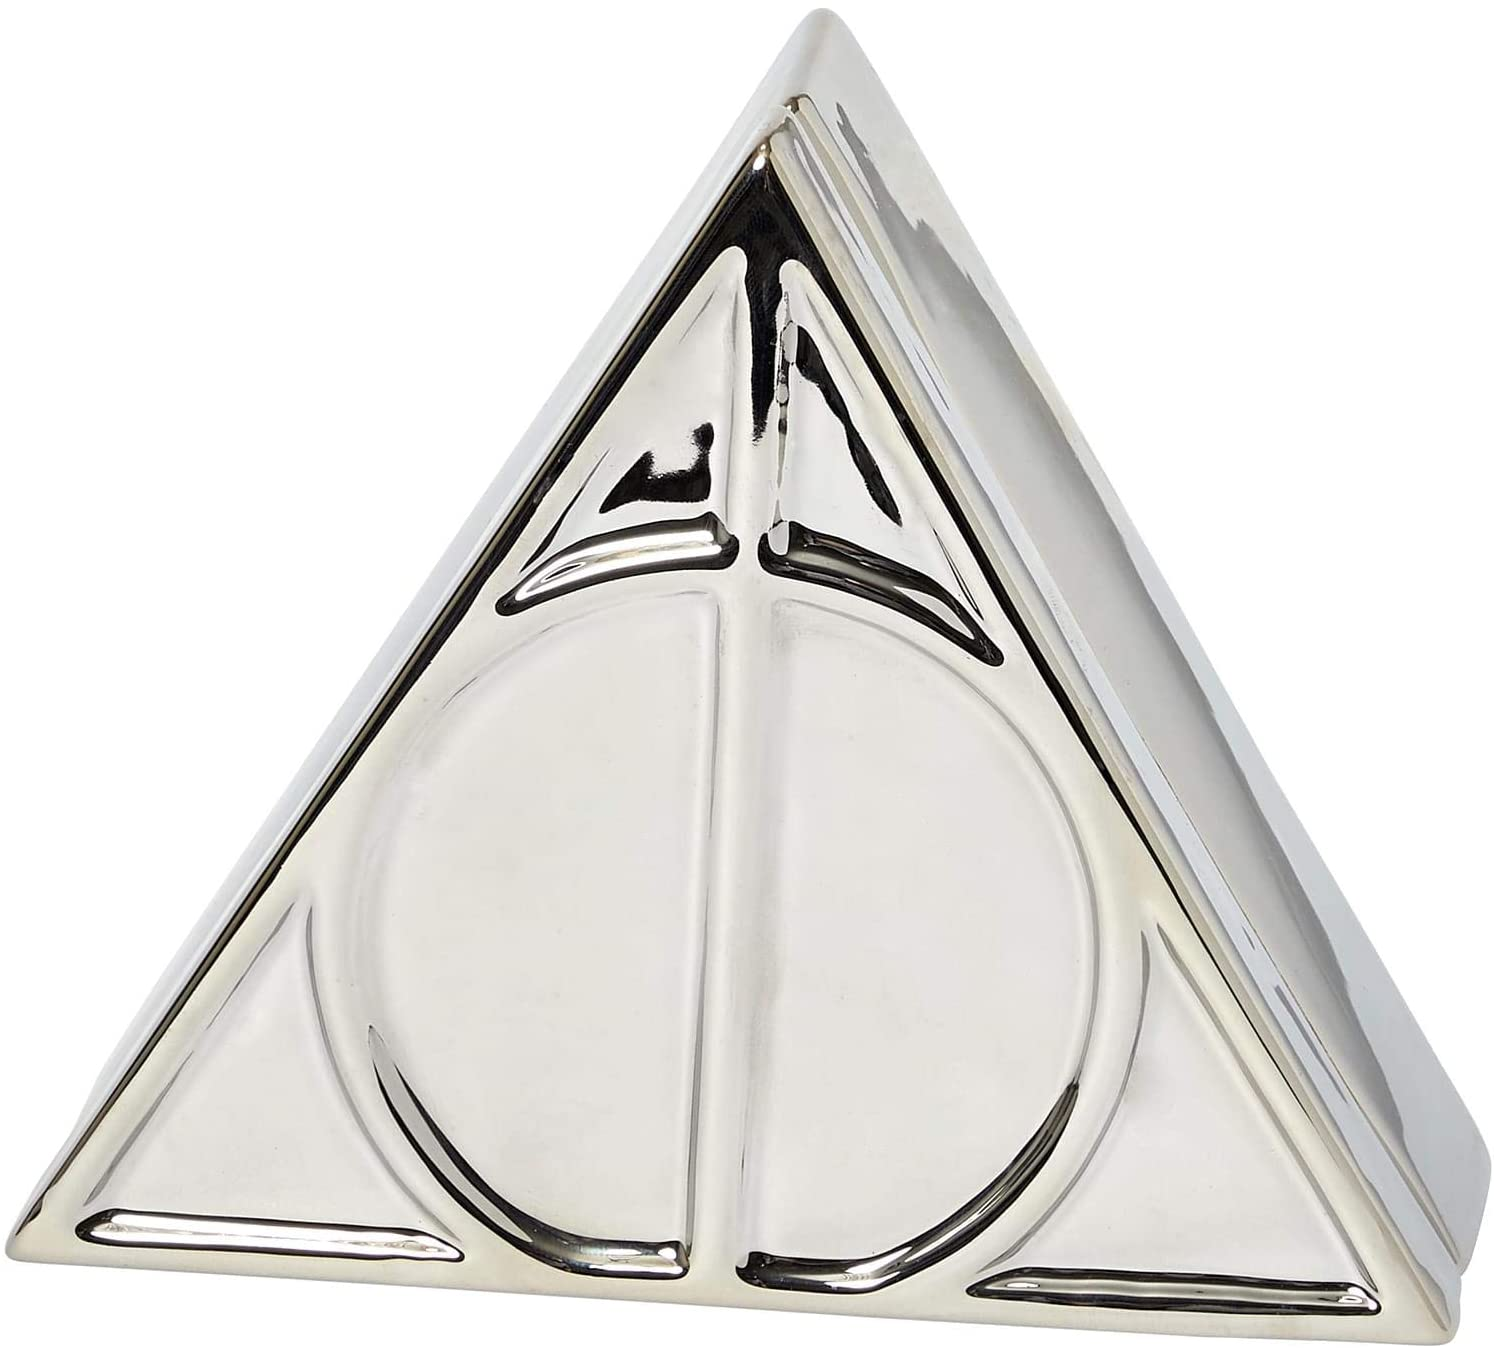 Harry Potter Deathly Hallows Trinket Box - Silver Ceramic Deathly Hallows Symbol Design with Lid - 12 oz